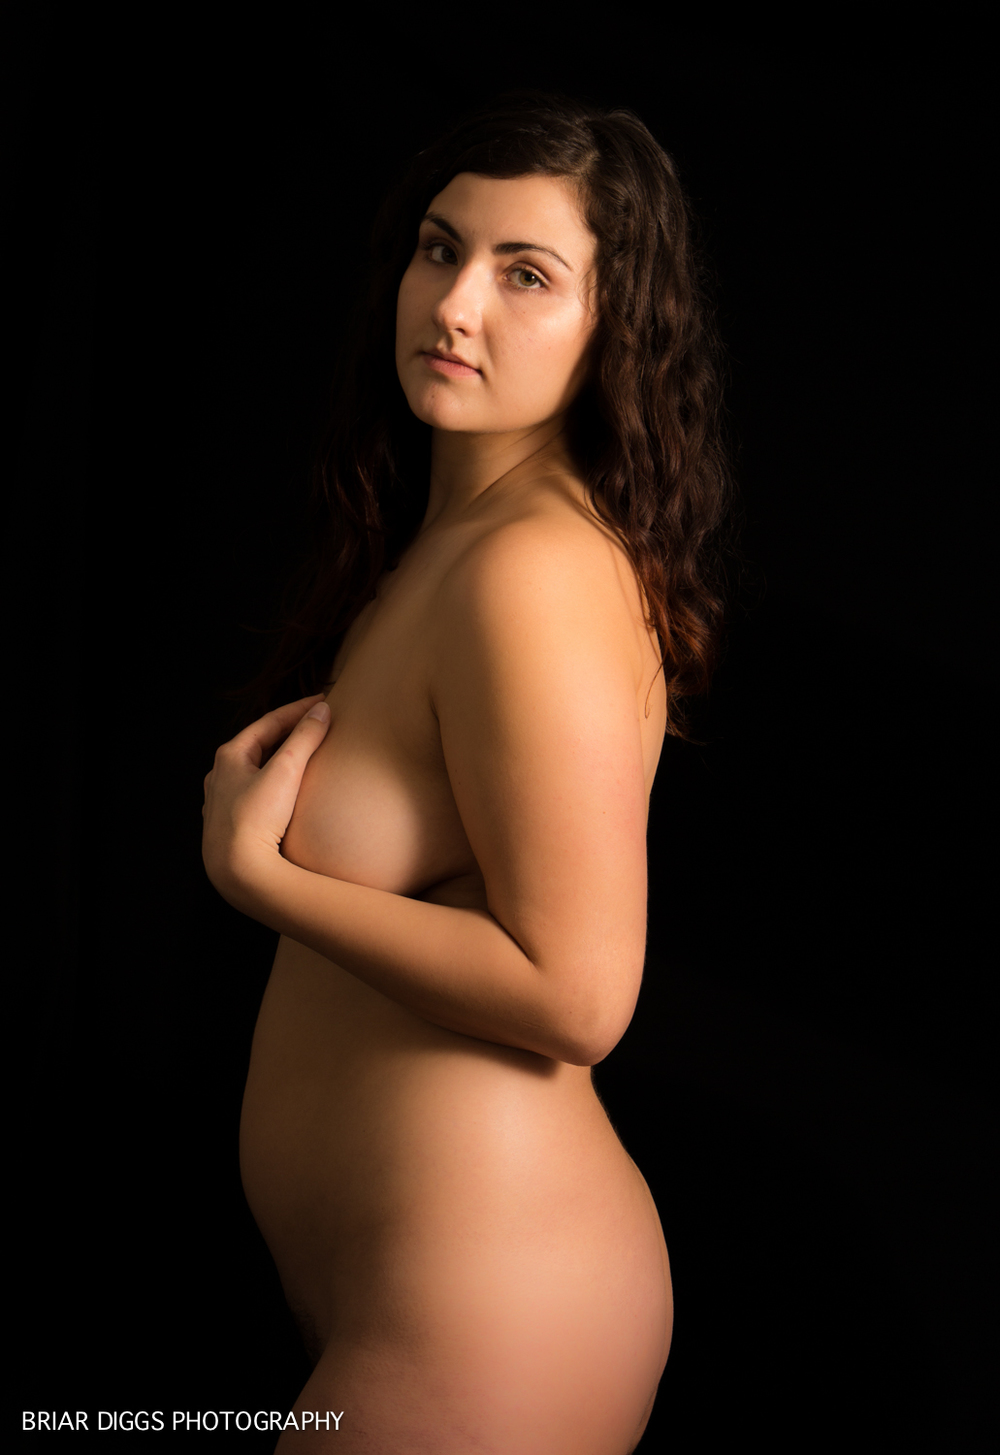 MODELS ART NUDES (COLOR)-42.jpg